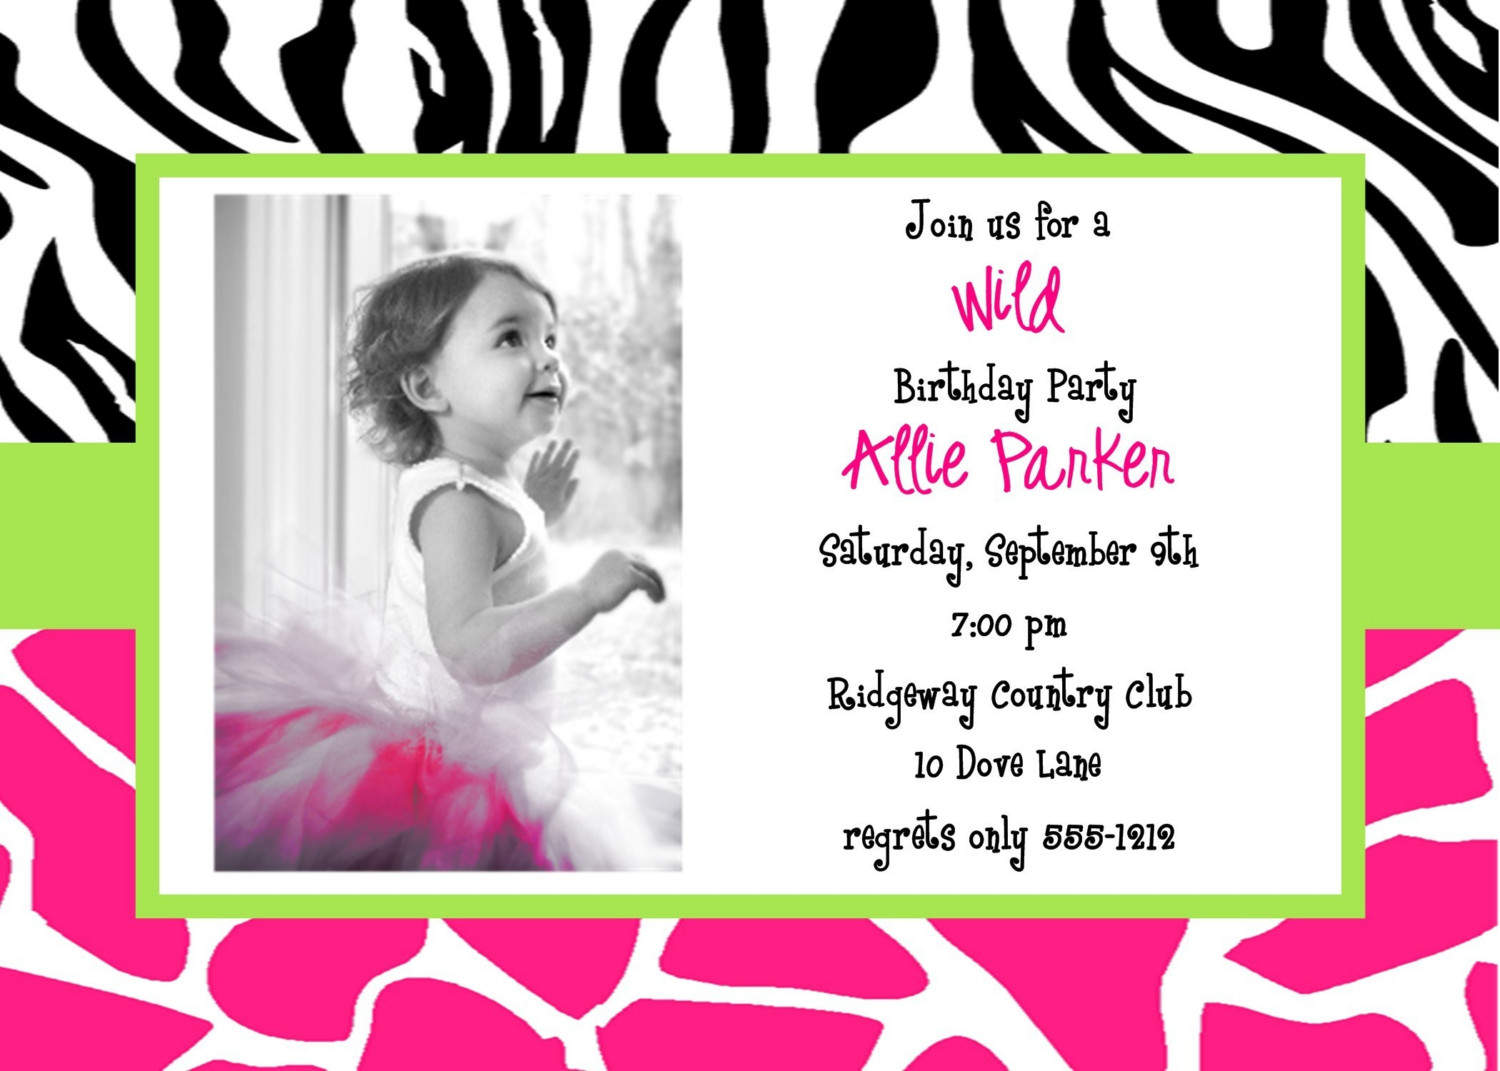 invitation cards for birthday party mickey mouse printable birthday invita birthday party invitation cards printable